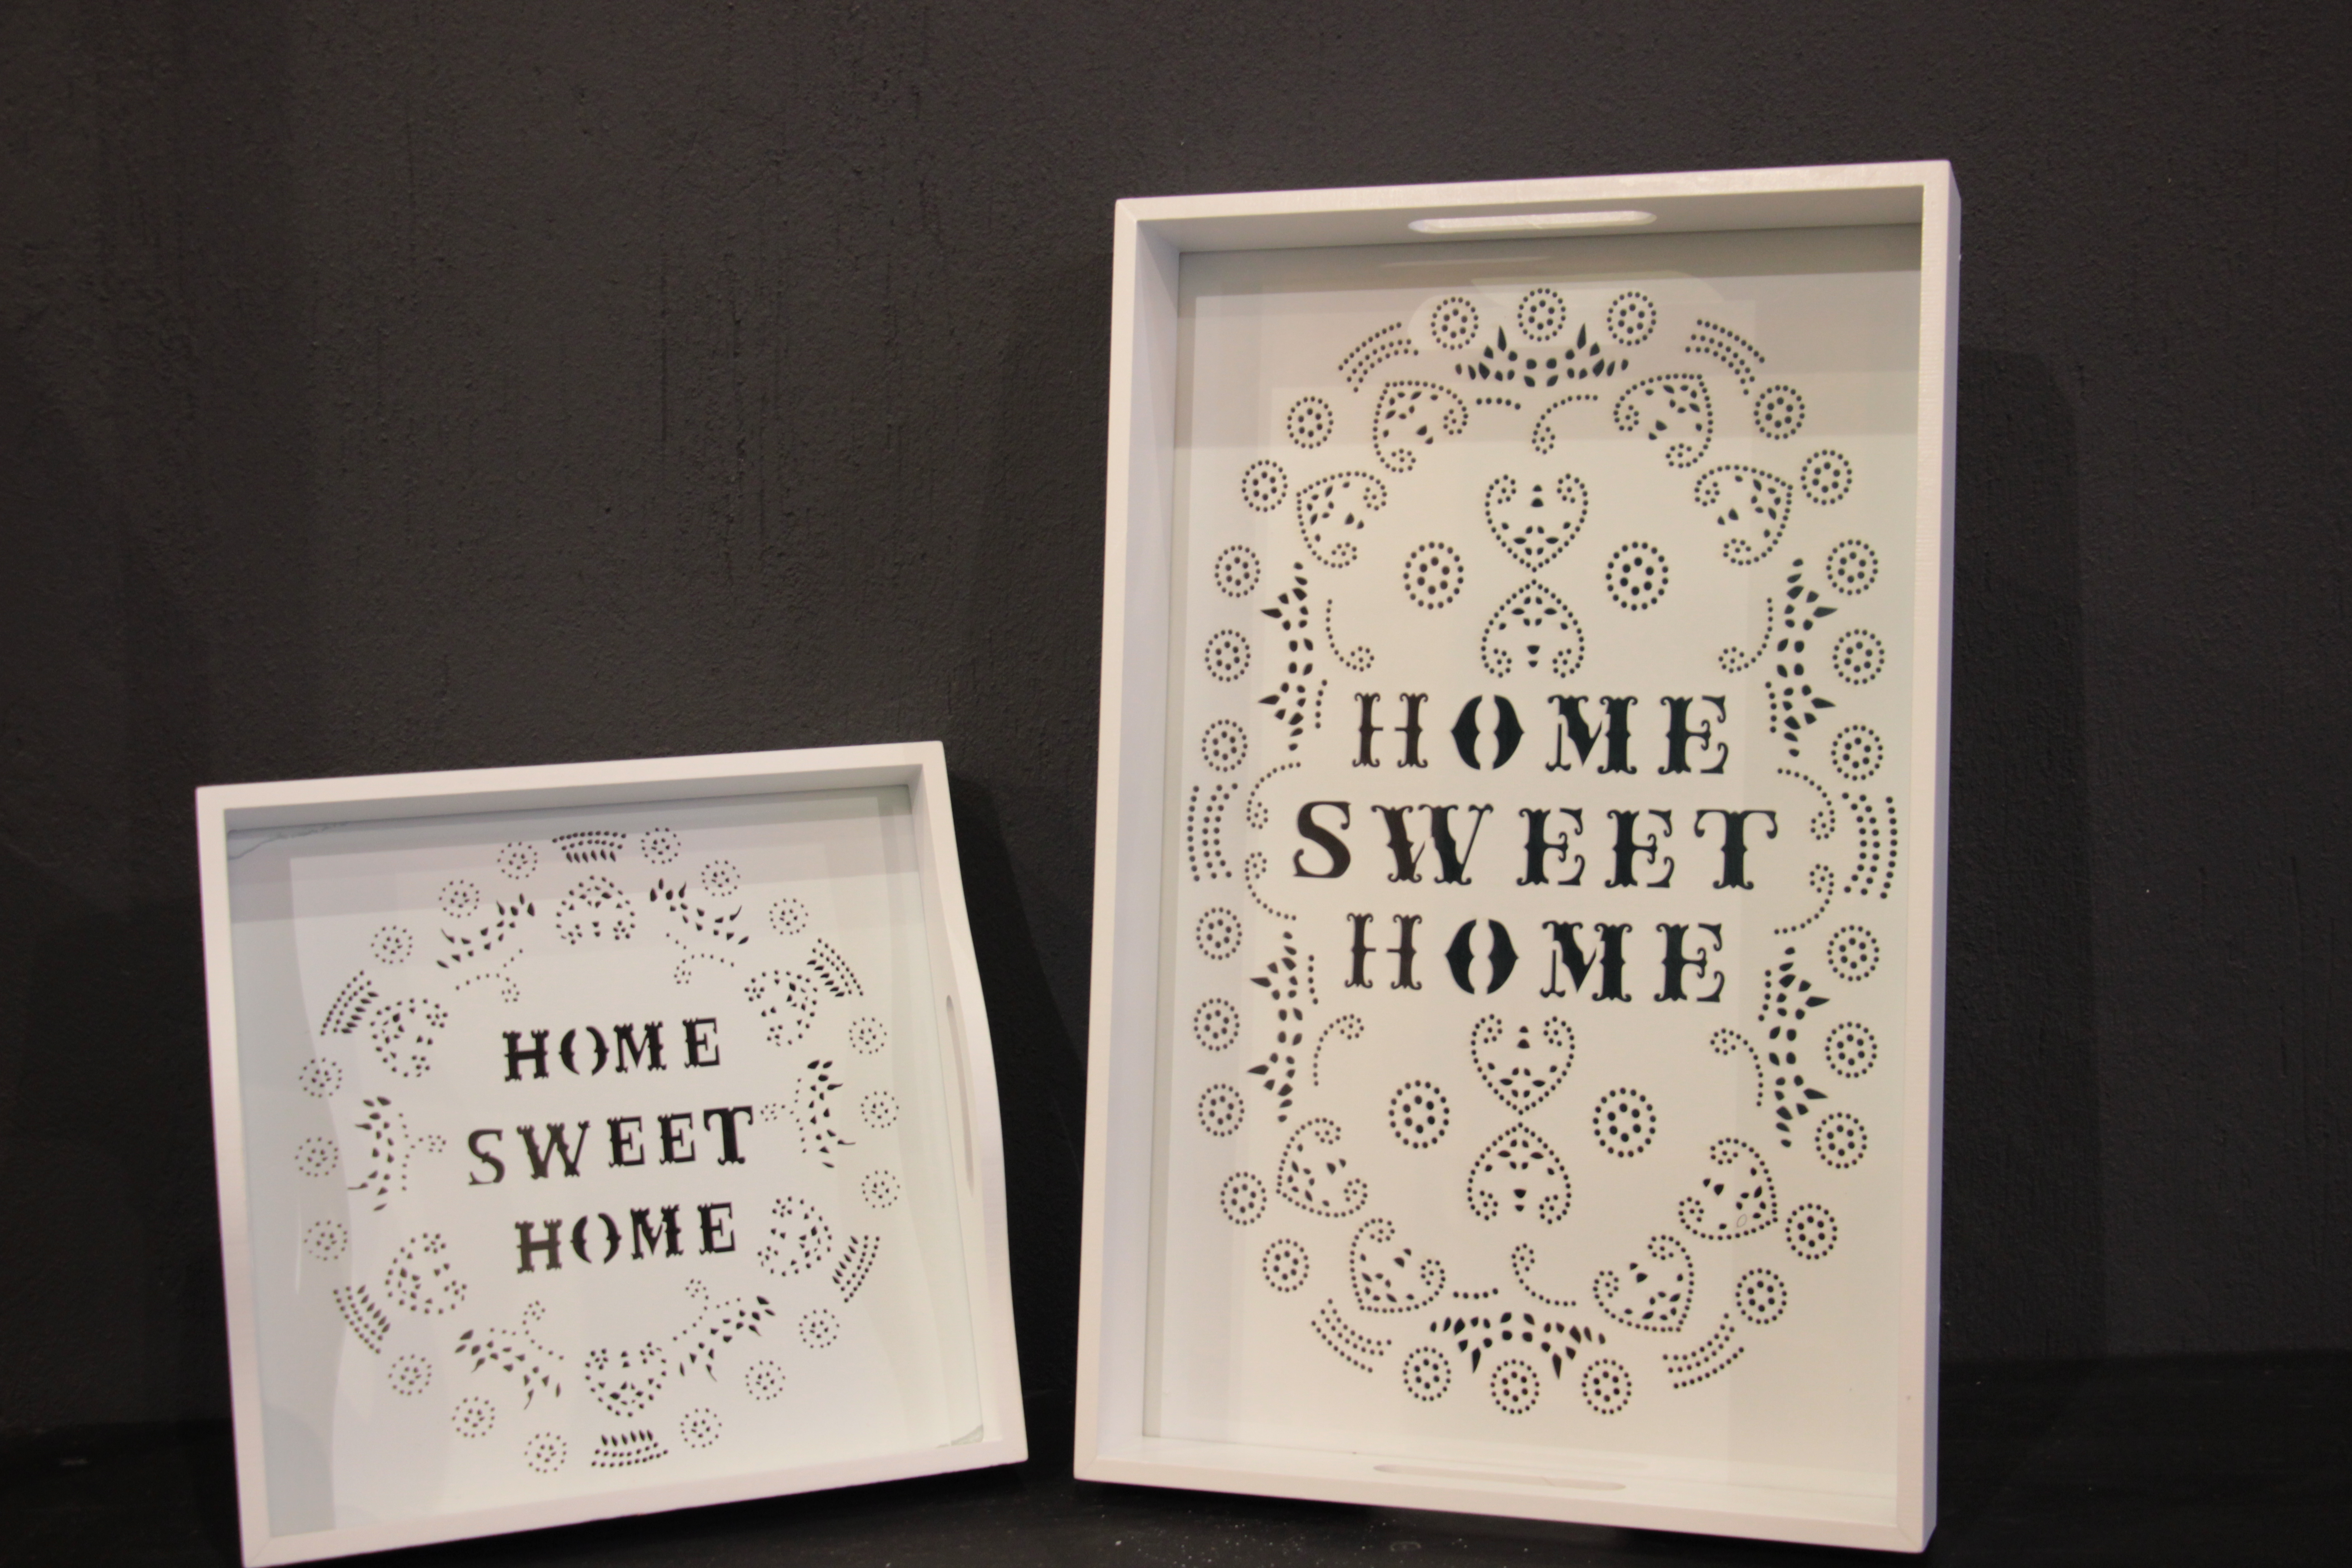 Plateaux home sweet home meubles et d coration tunisie for Sweet home meuble